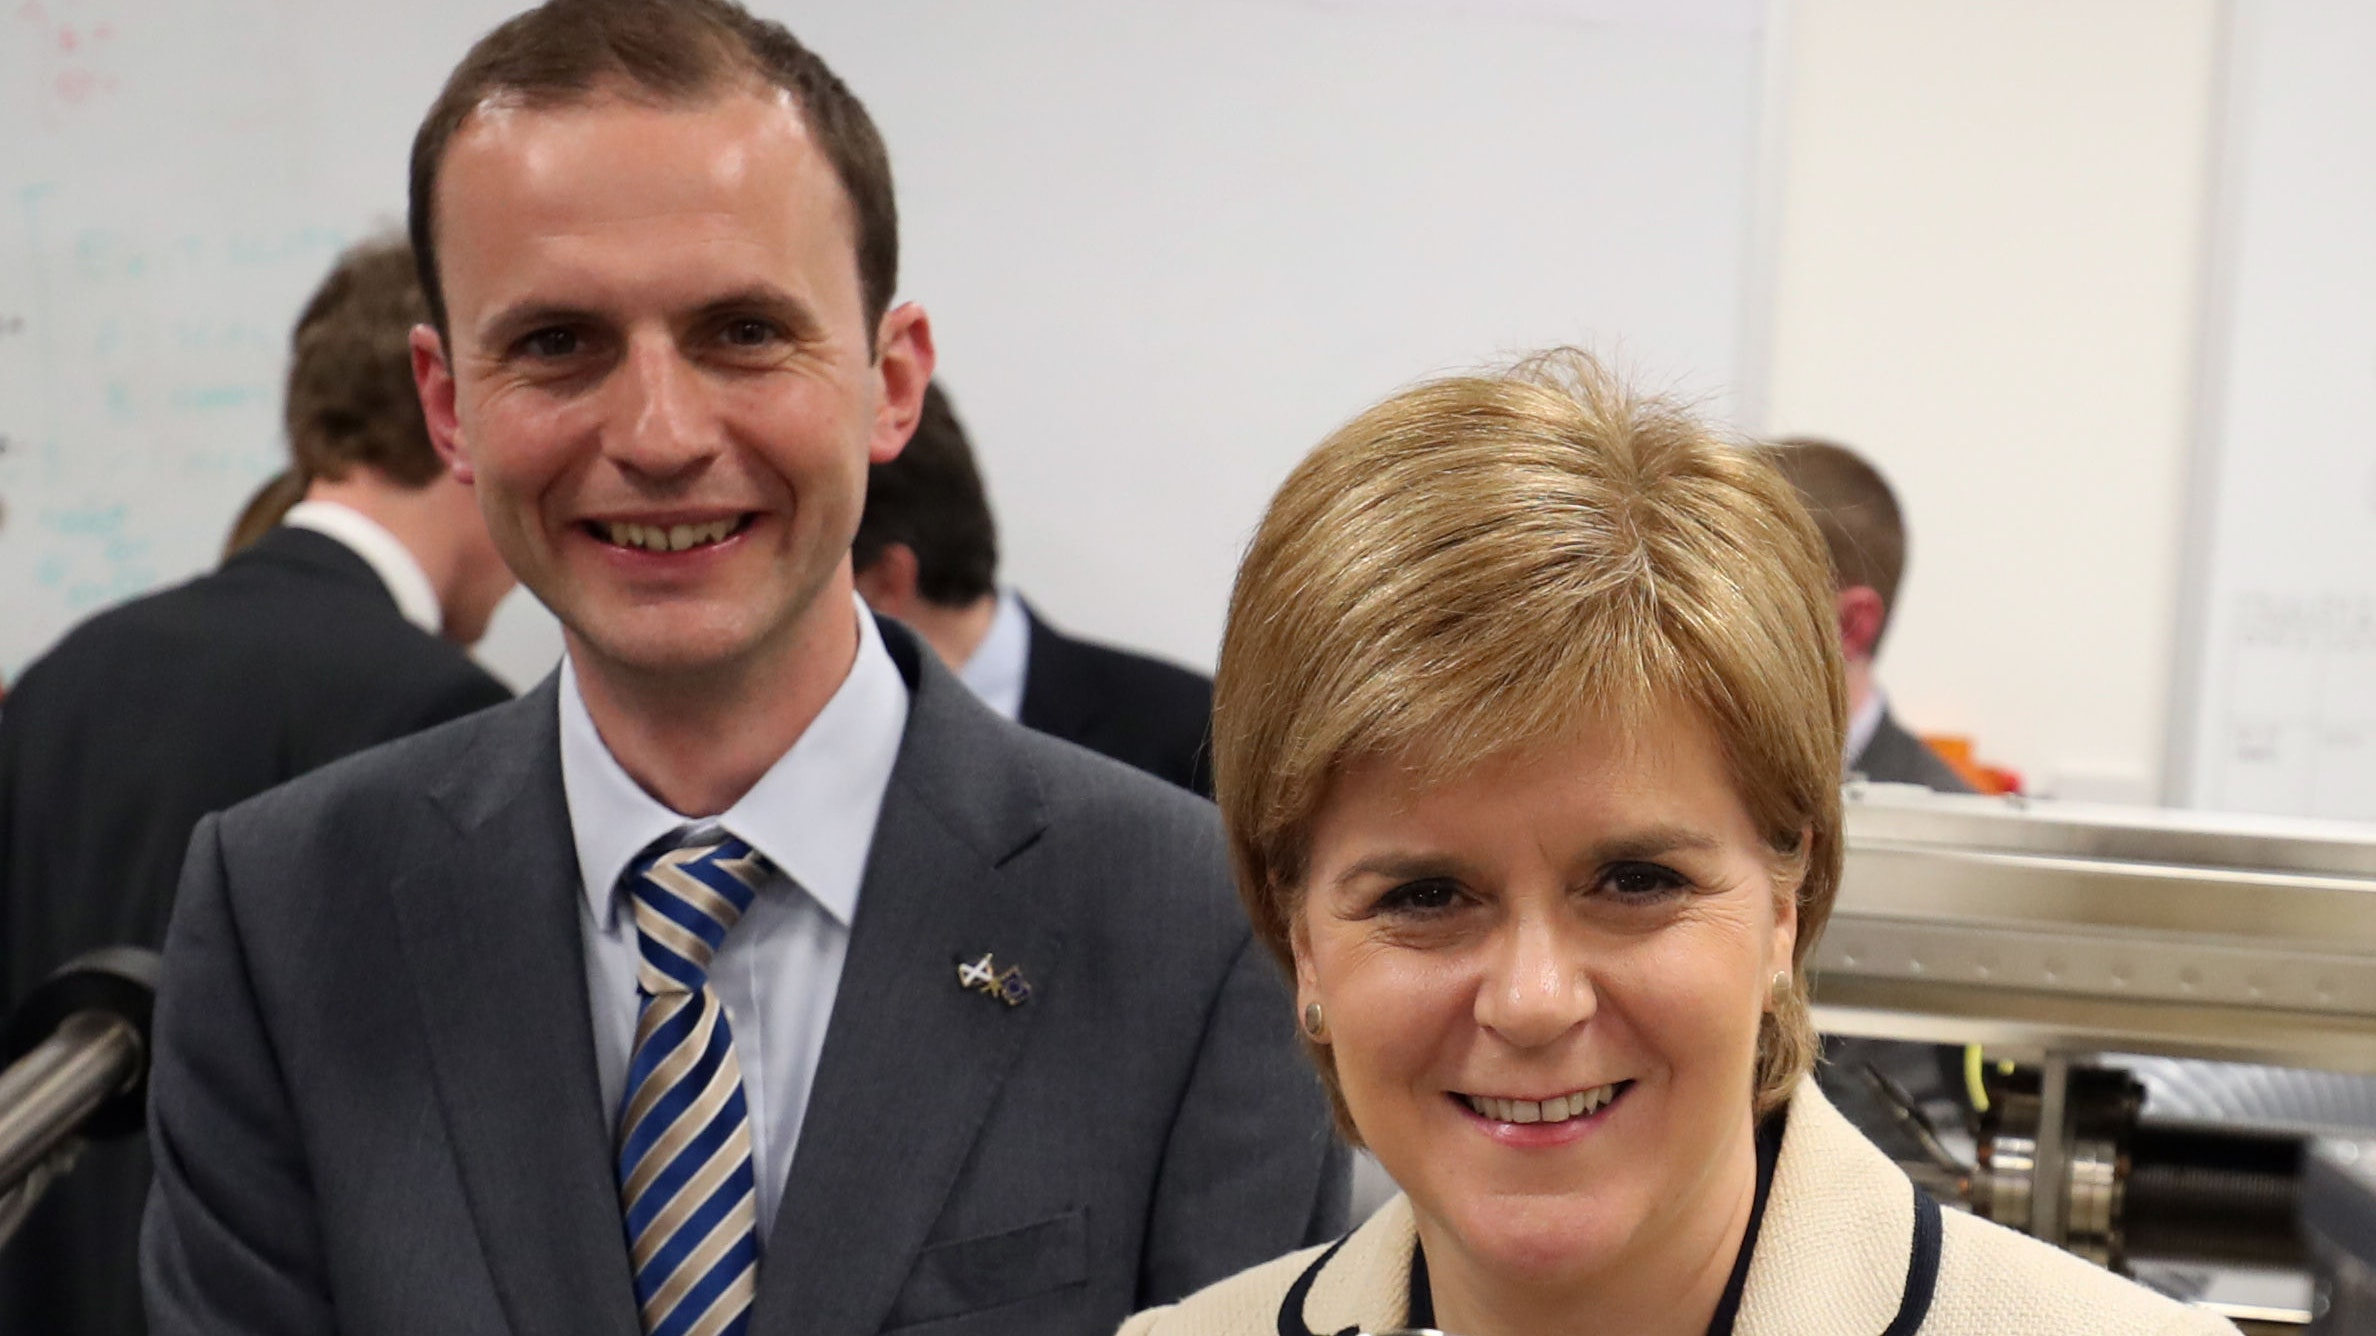 An independent Scotland would 'act as a bridge between Brussels and London'